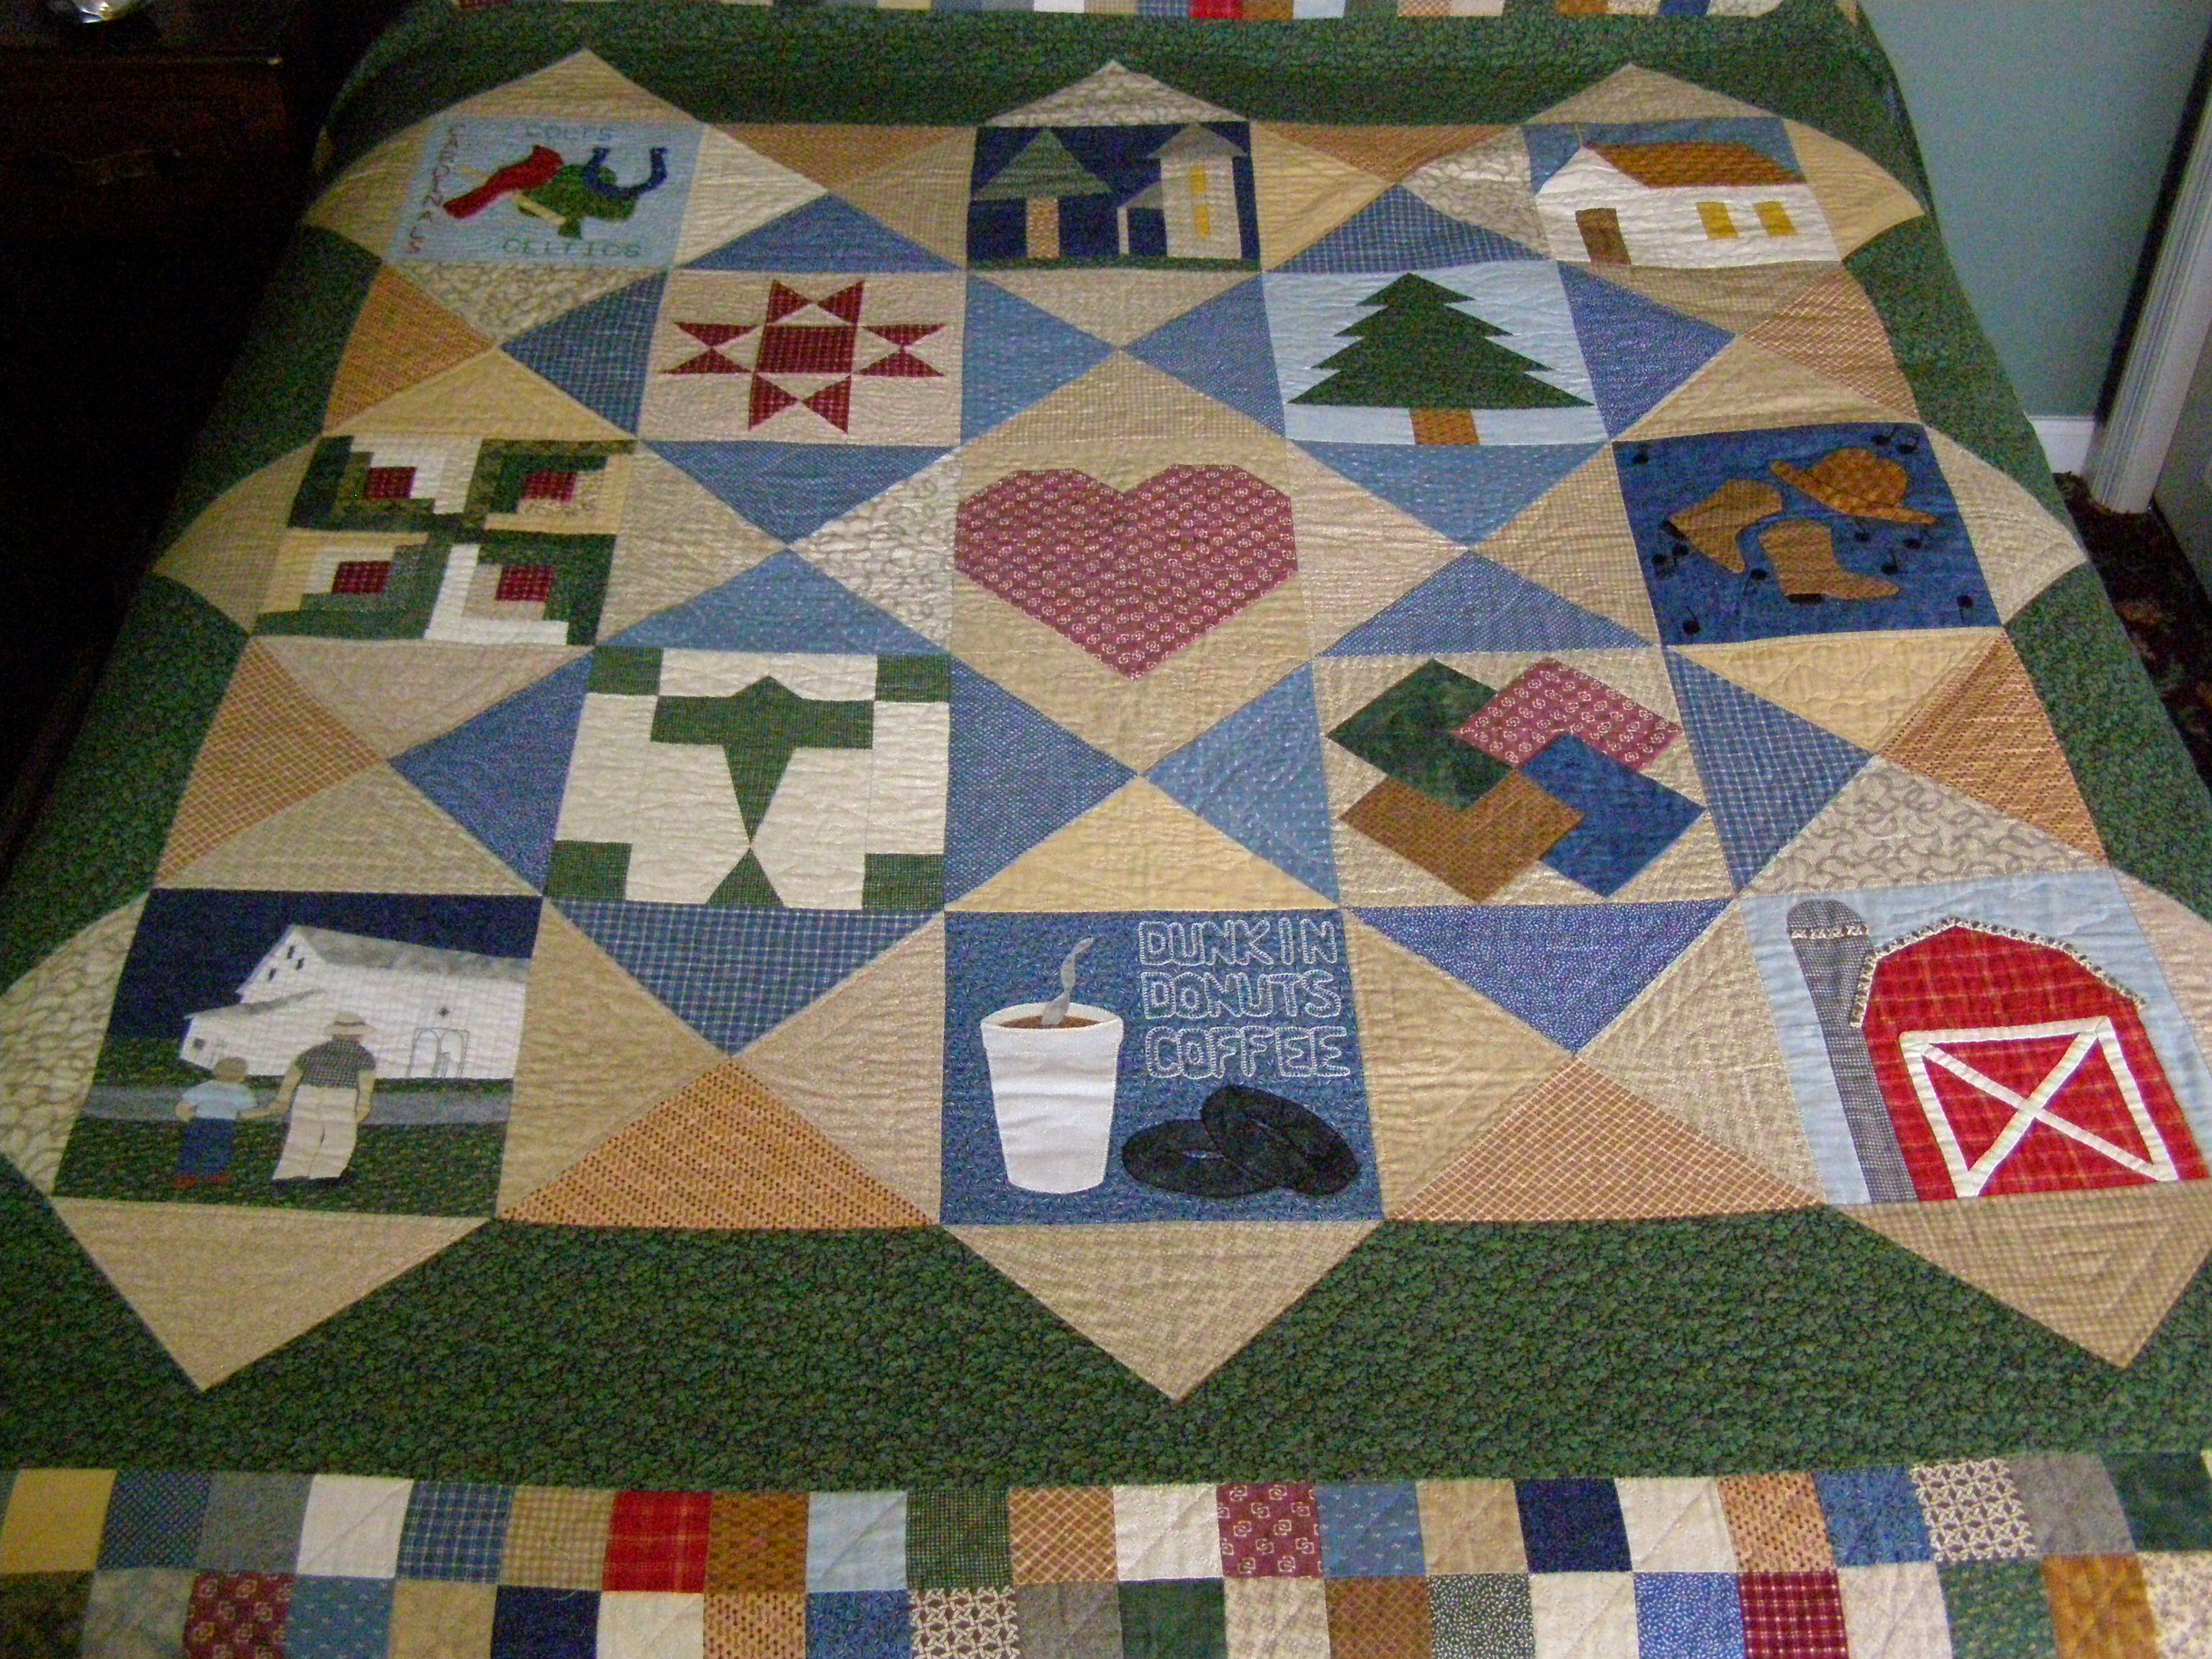 Ger s quilt festival u tribute to my husband entry u the